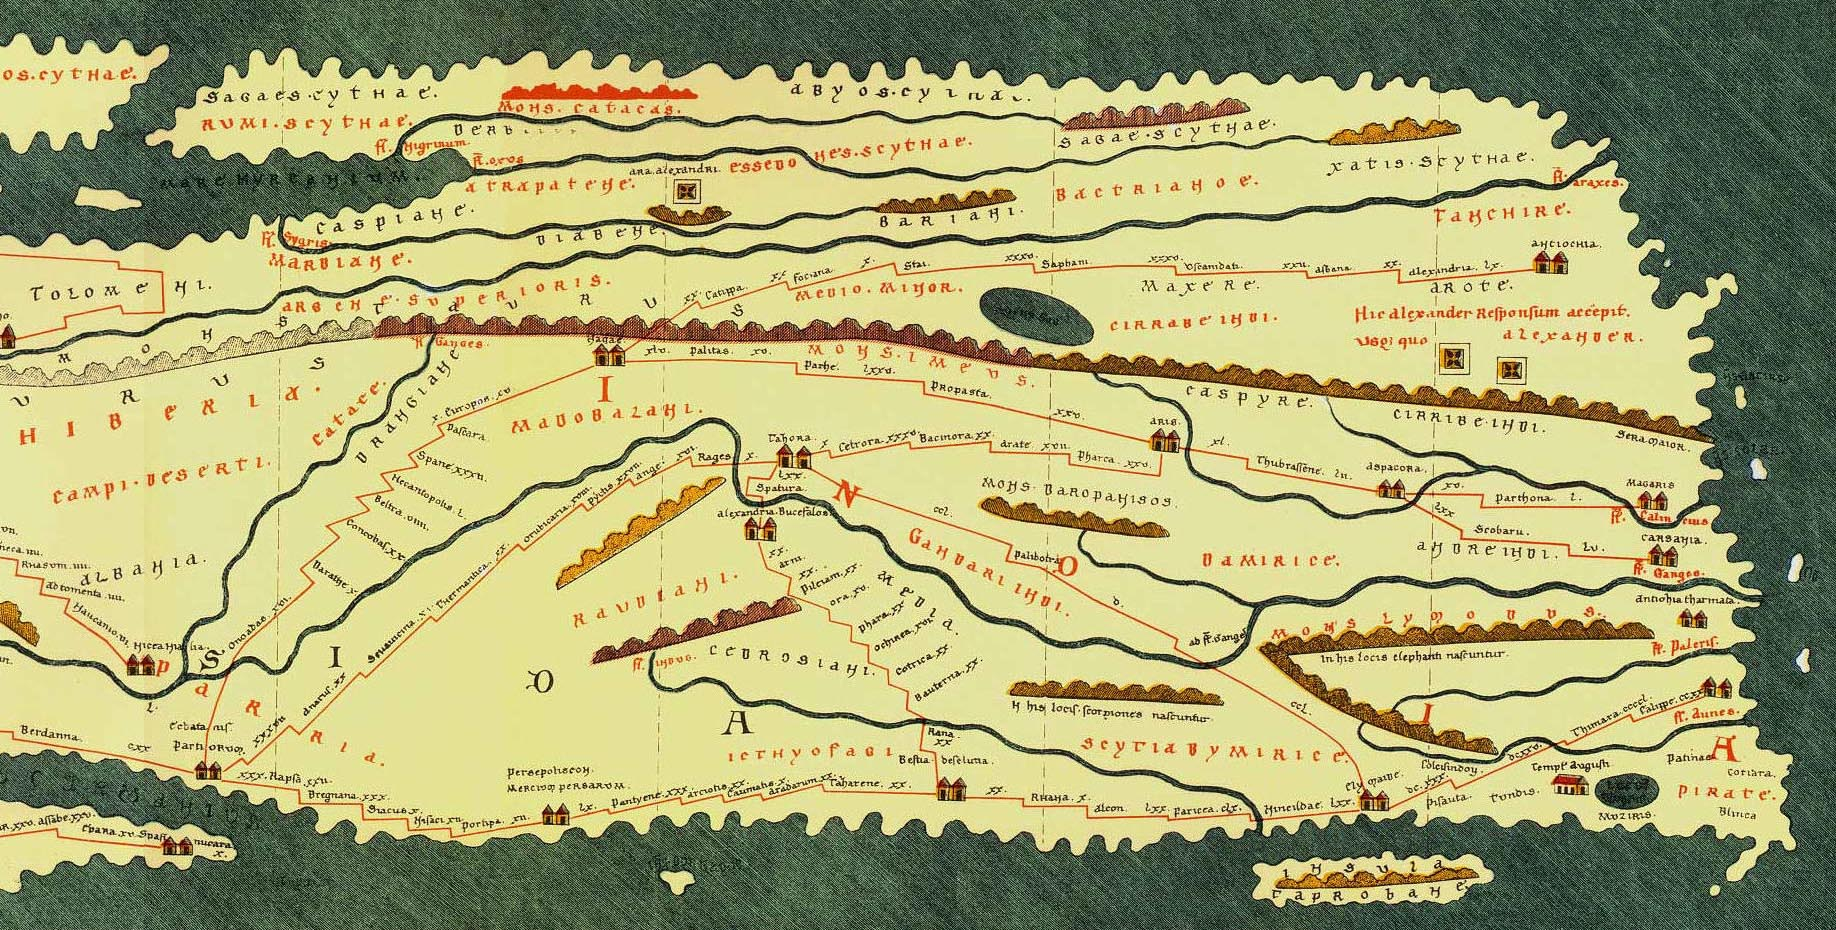 The Legacy Of GrecoRoman Mapmaking The New York Times - Egypt and rome map